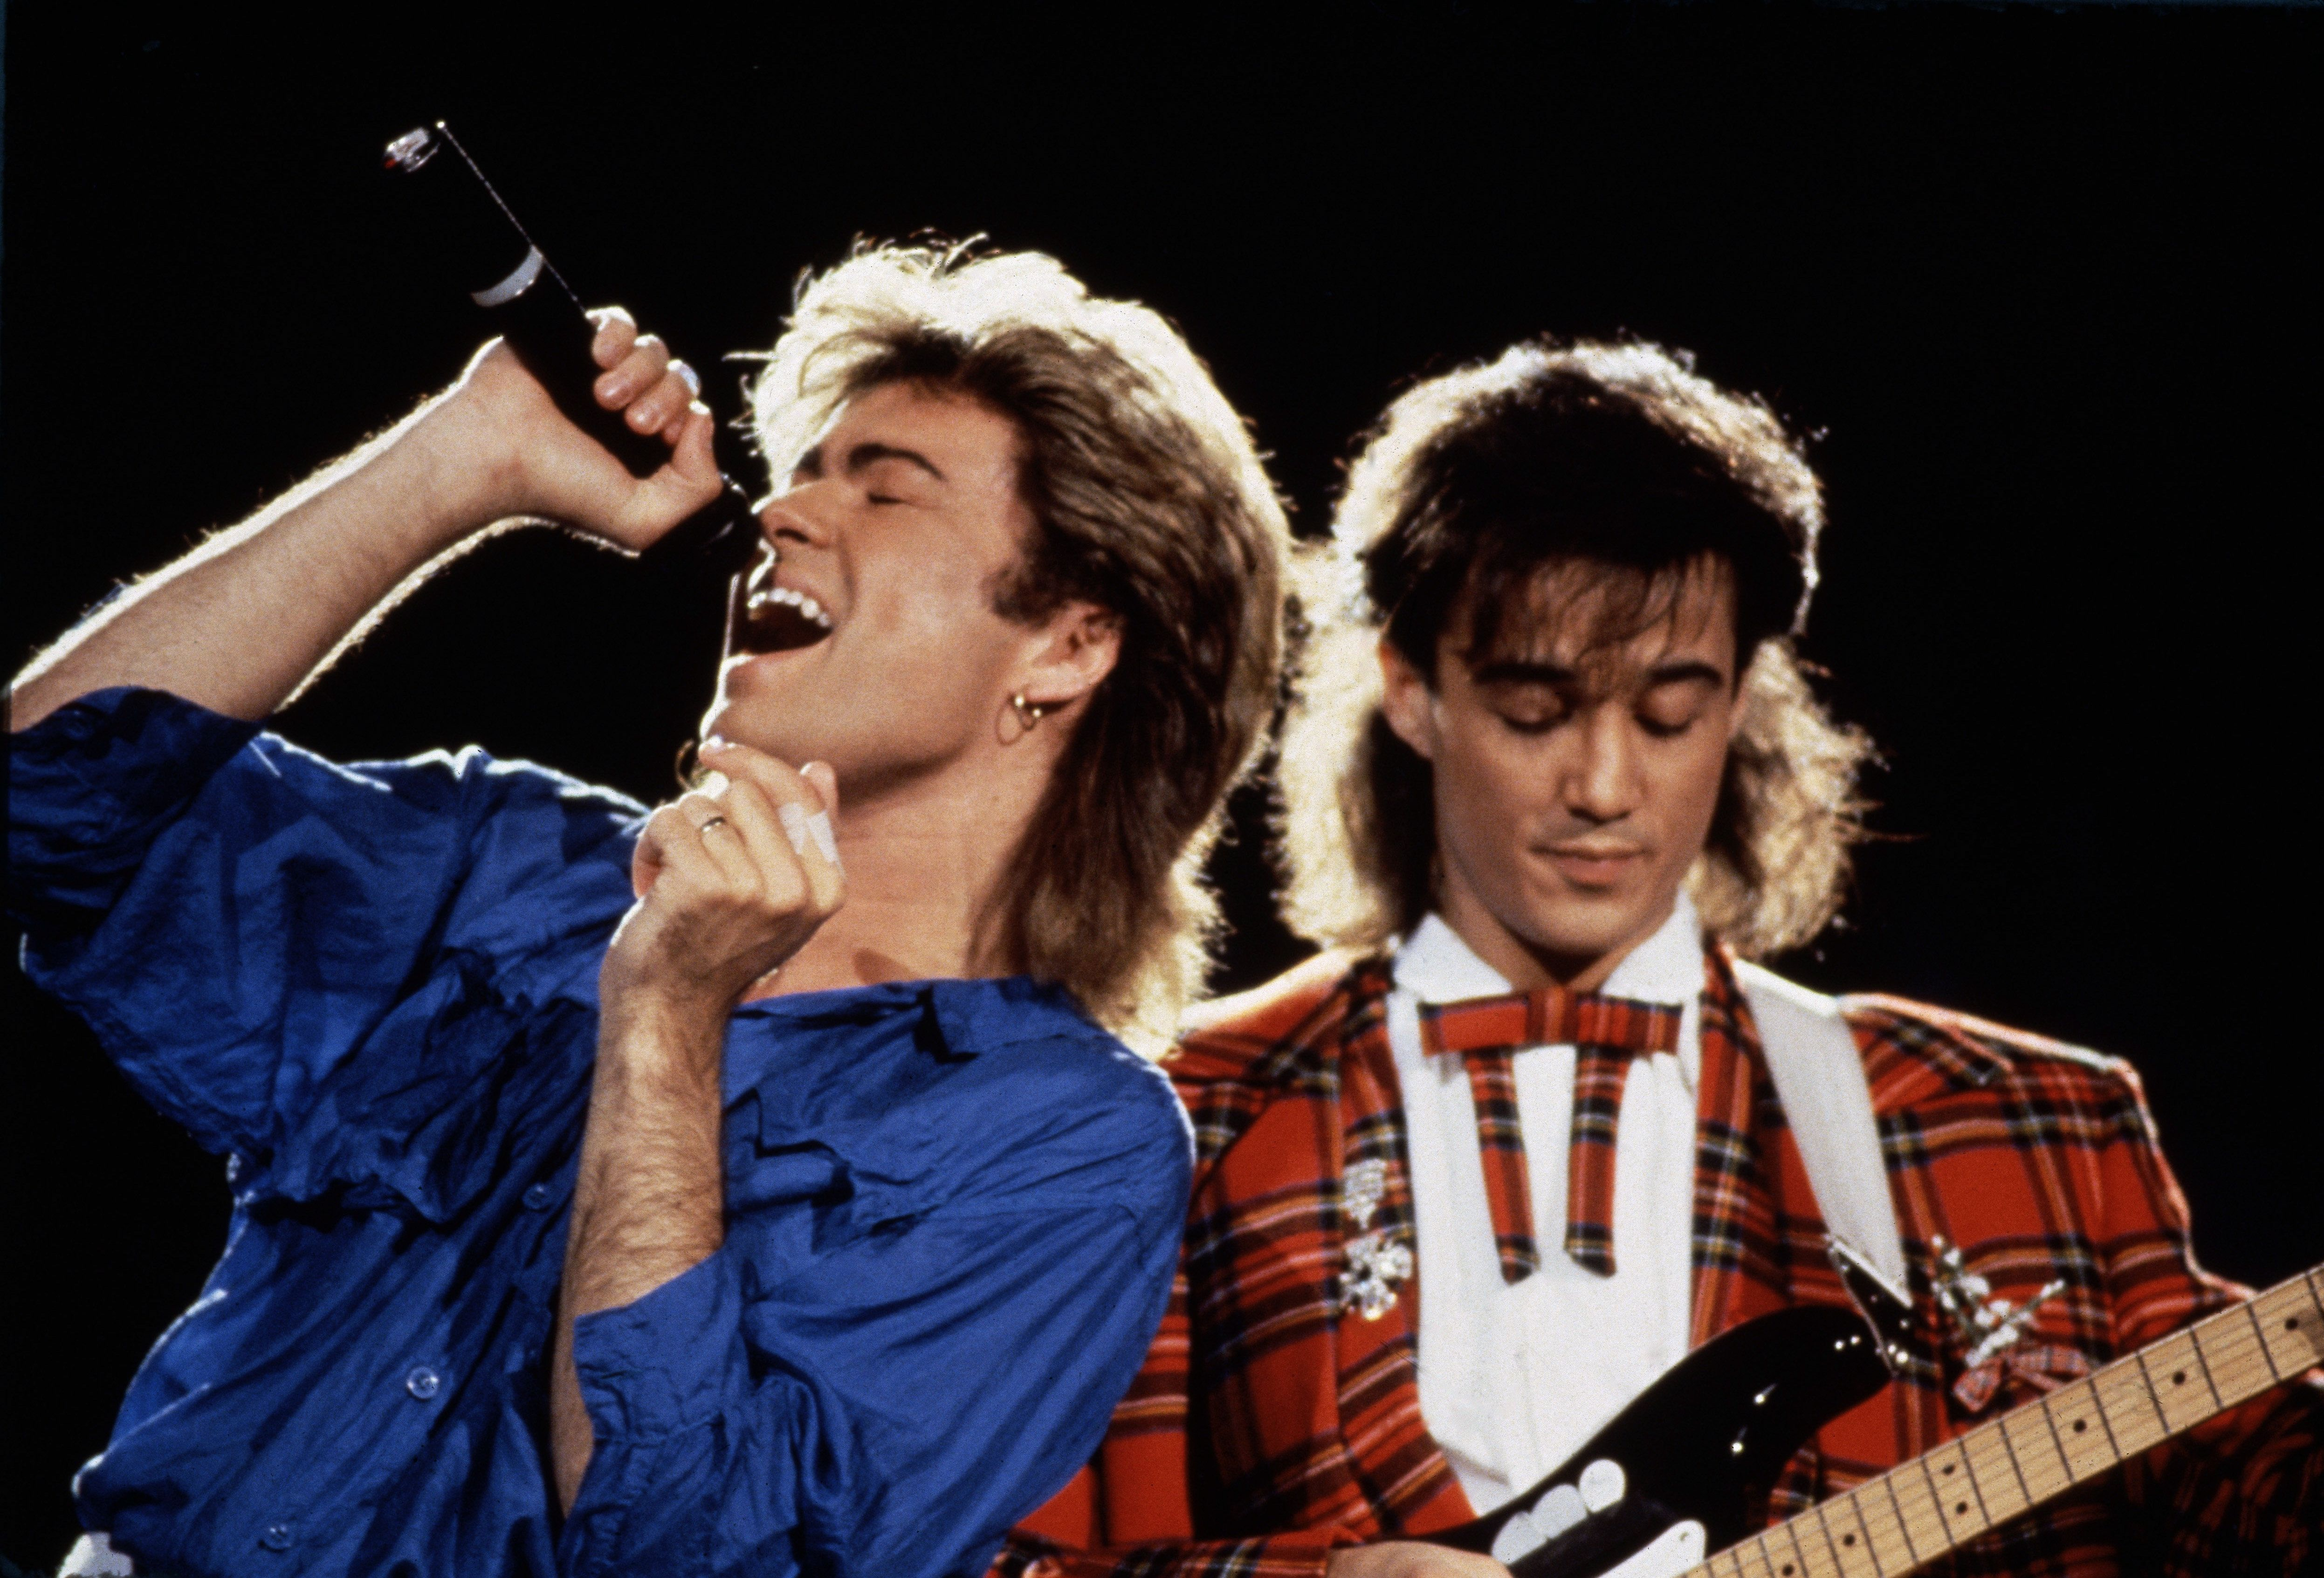 George Michael is seeking memorabilia from his early days of solo success, as well as his Wham! partnership...